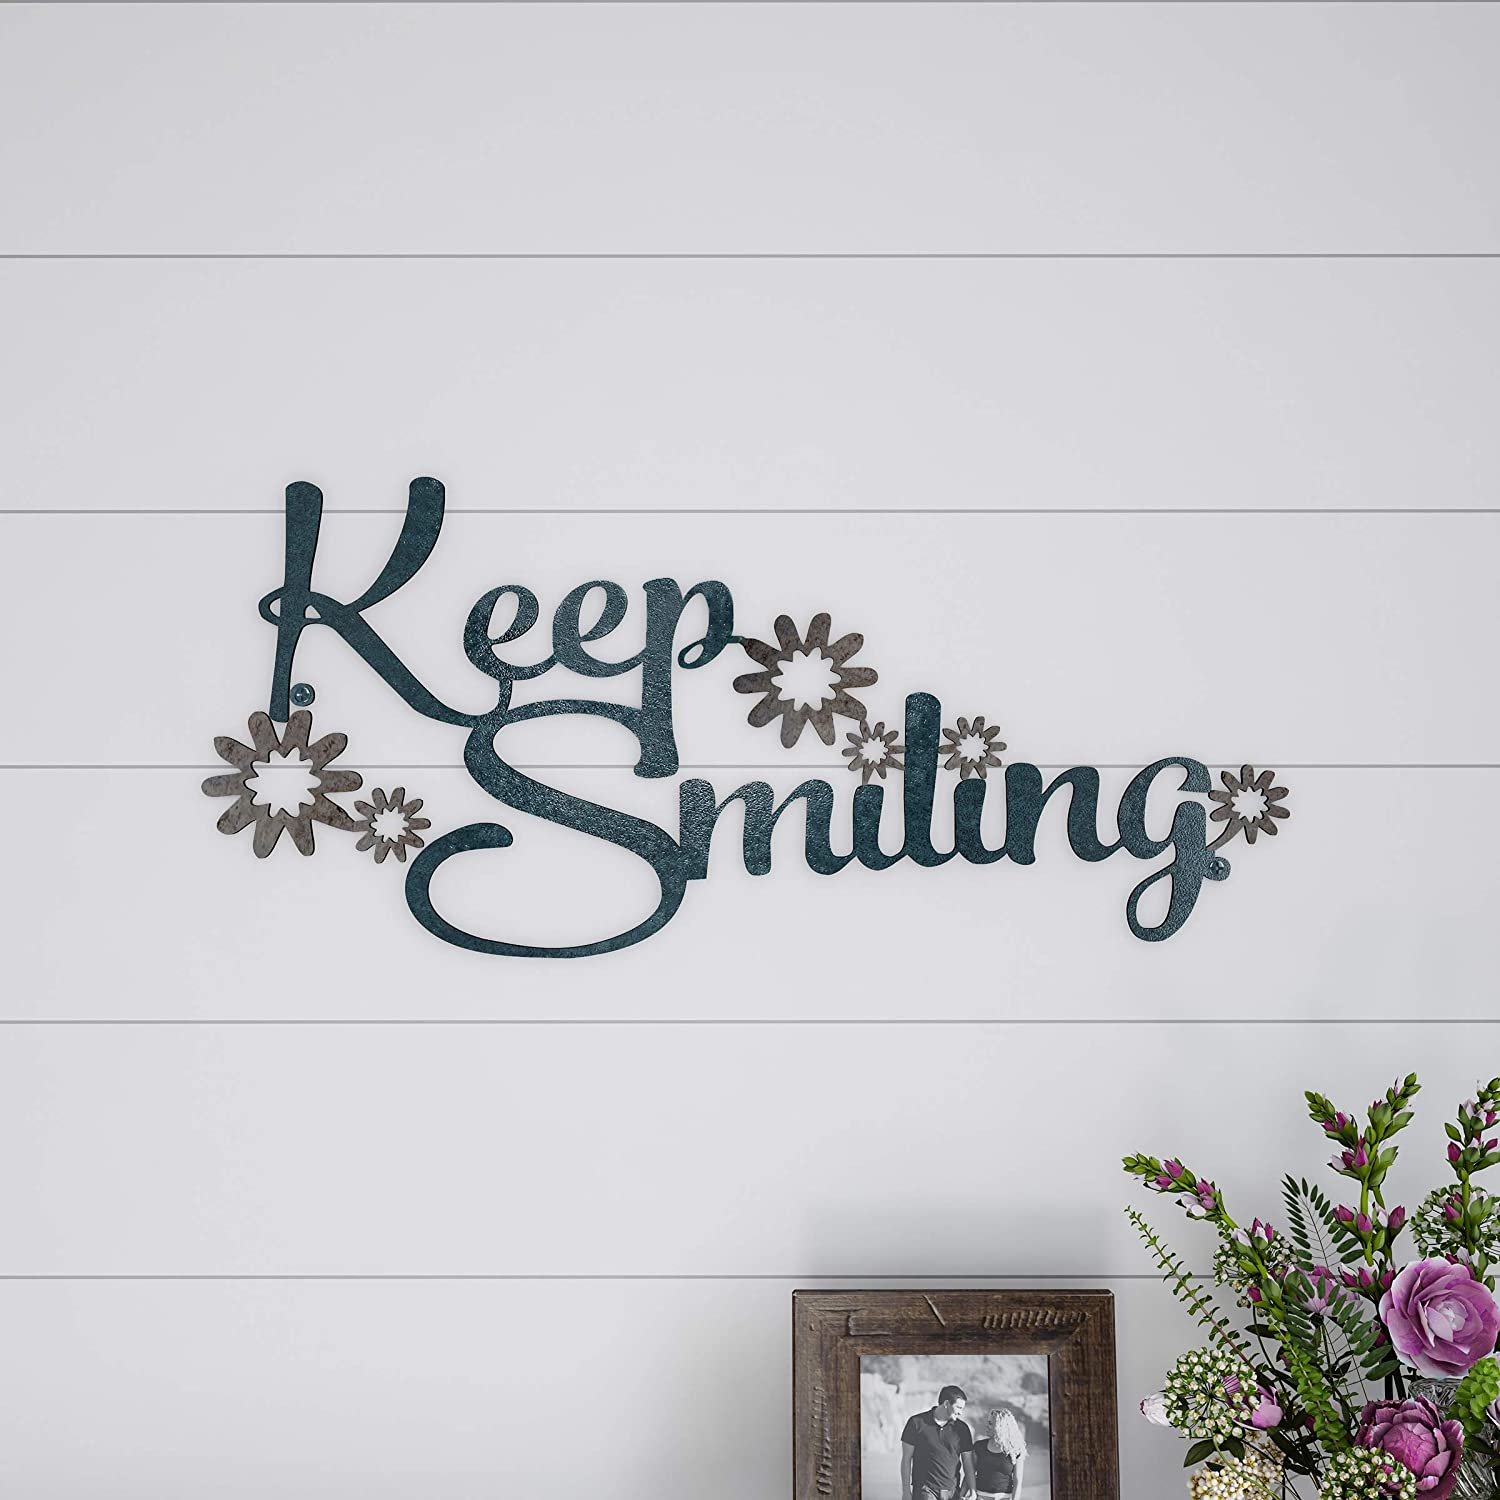 Lavish Home Metal Cutout-Keep Smiling Wall Sign-3D Word Art Home Accent Decor-Perfect for Modern Rustic or Vintage Farmhouse Style